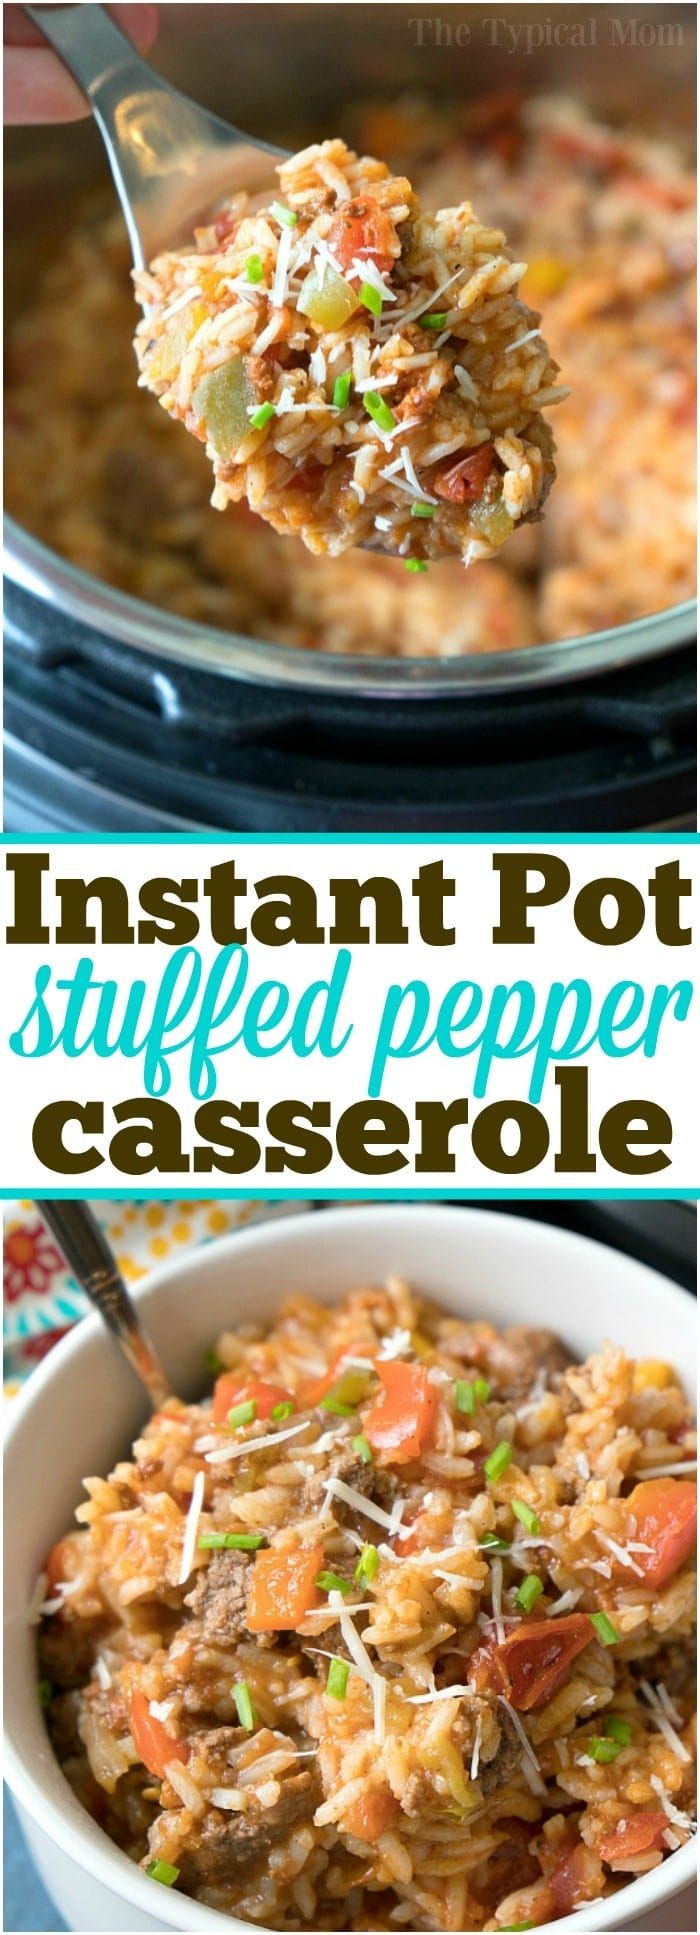 This Instant Pot stuffed pepper casserole is so flavorful and simple to make! Like deconstructed stuffed peppers in your pressure cooker but way easier!  #instantpot #pressurecooker #stuffed #peppers #pepper #cassserole #rice #casserole